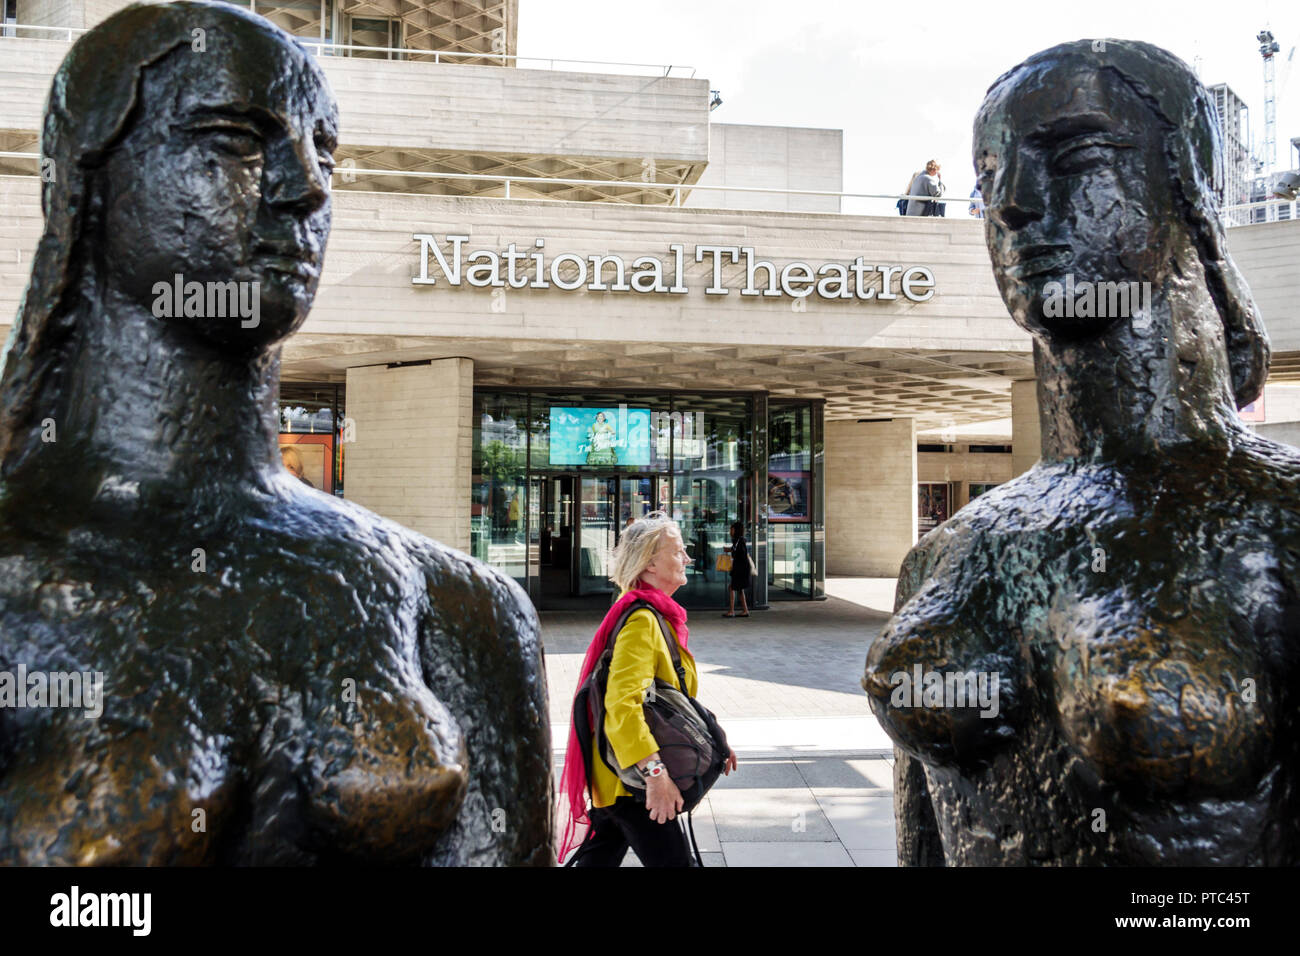 London England United Kingdom Great Britain Lambeth South Bank National Theatre theater exterior bronze sculpture London Price by Frank Dobson woman passerby pedestrian - Stock Image